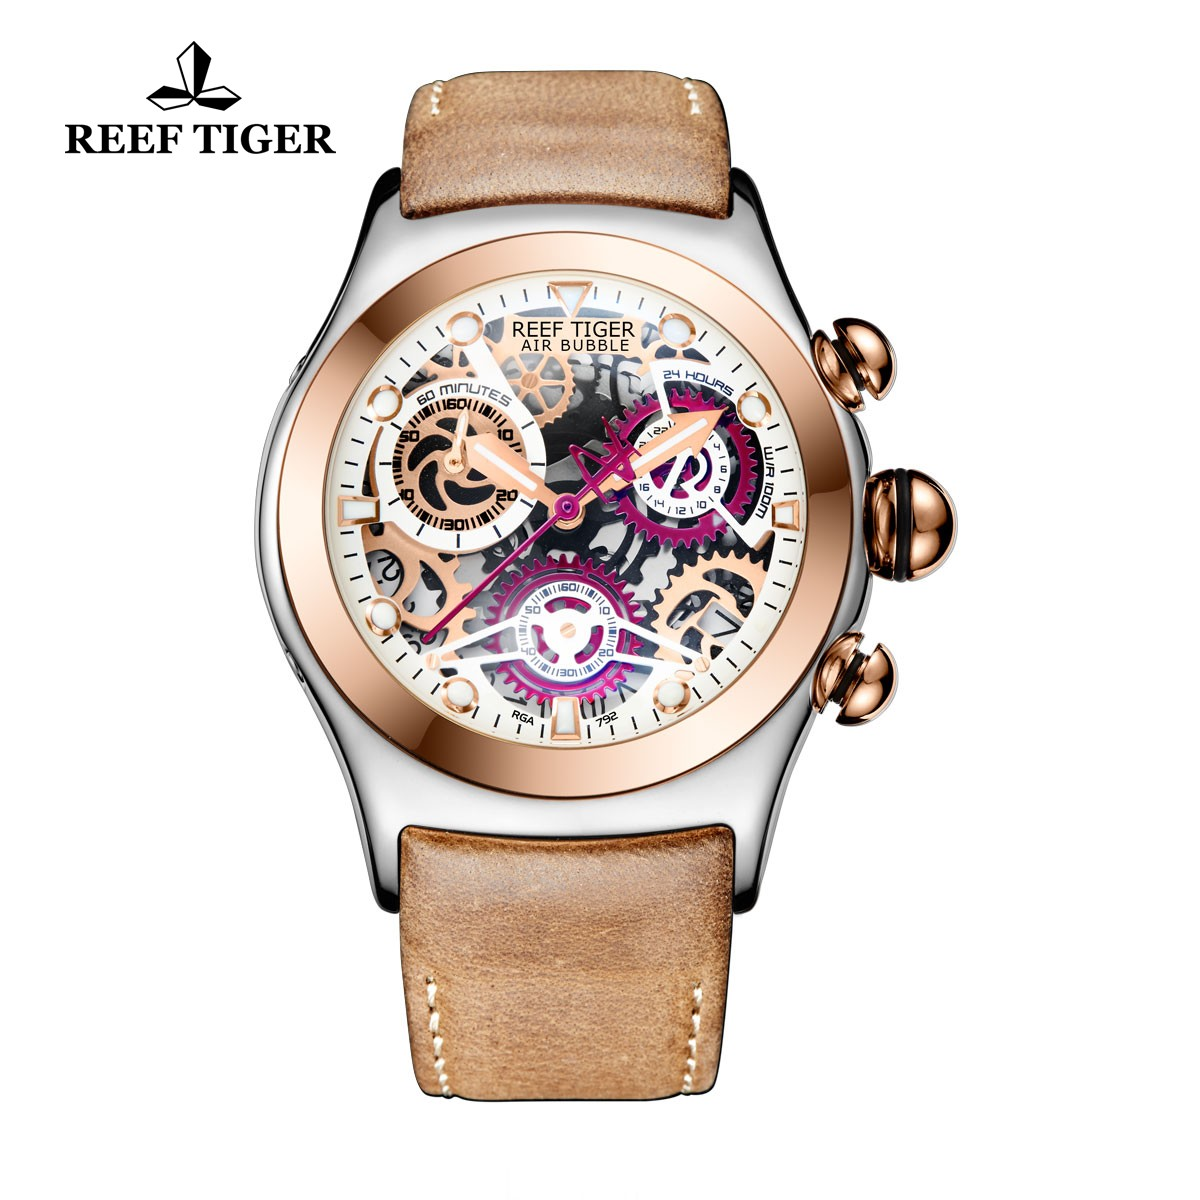 Reef Tiger Big Bang Sport Casual Watches Chronograph Watch Rose Gold Case Leather Strap RGA792-TWBS